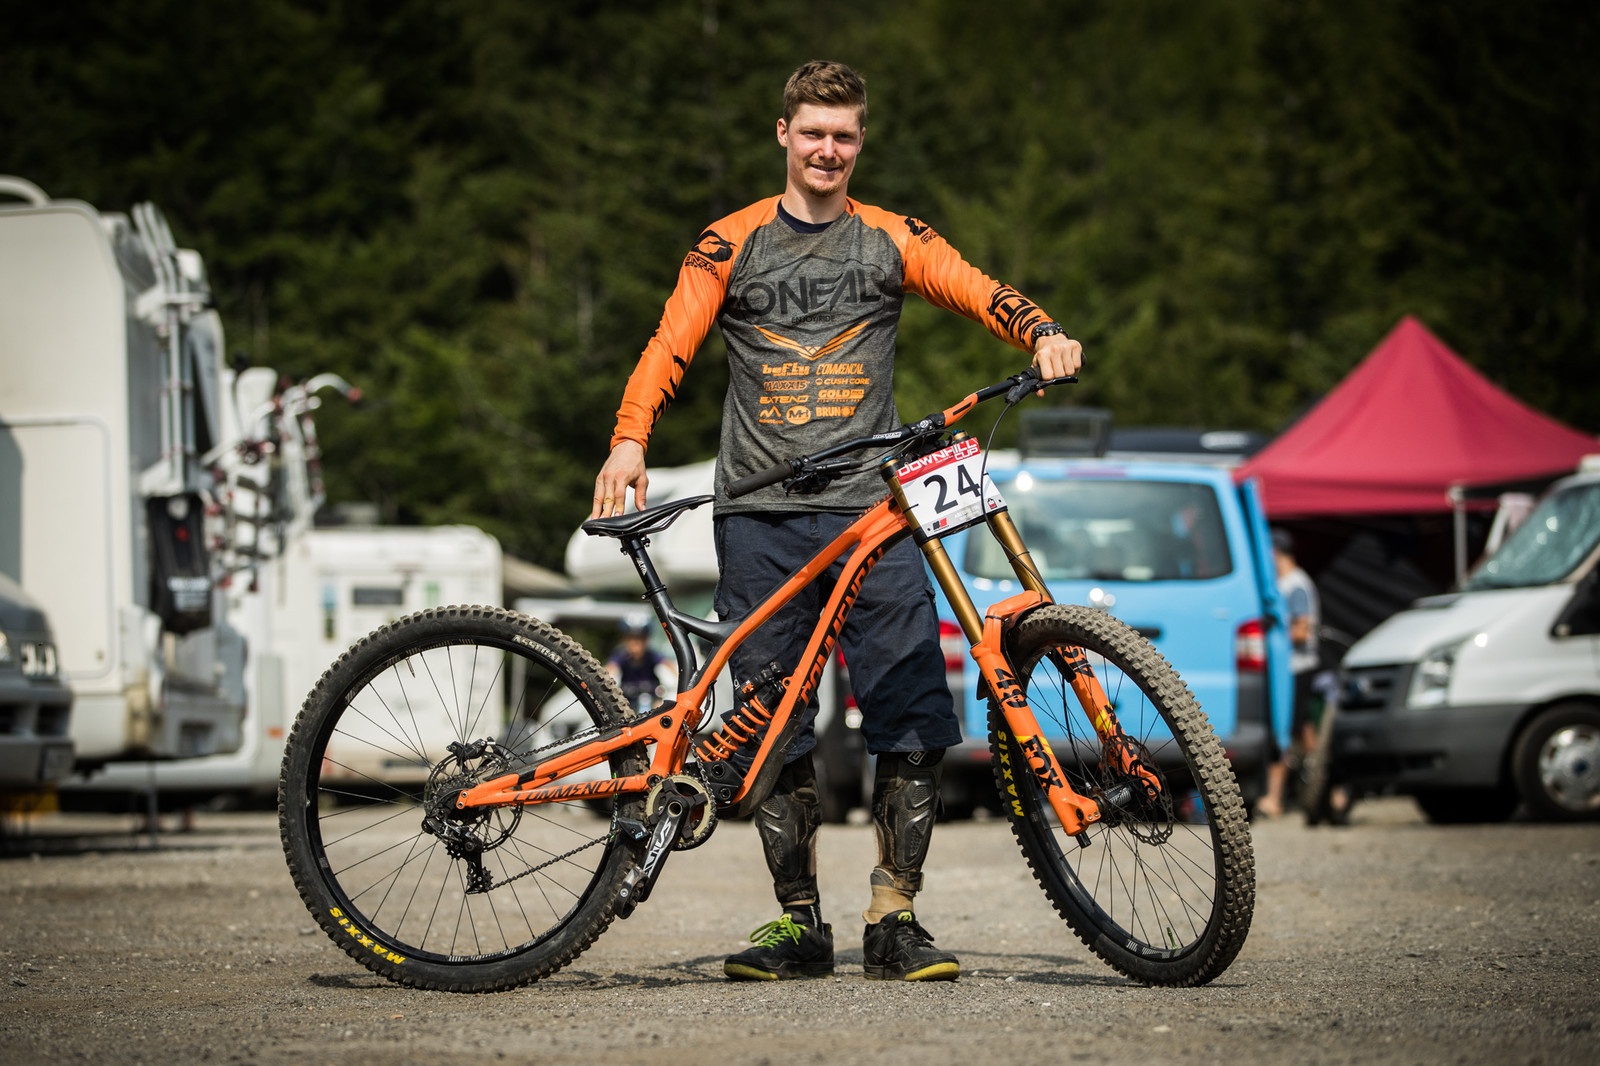 Felix Bauer with his Commencal Supreme DH 29 - 25 Downhill Bikes - iXS DH Cup #3 - Abetone - Mountain Biking Pictures - Vital MTB